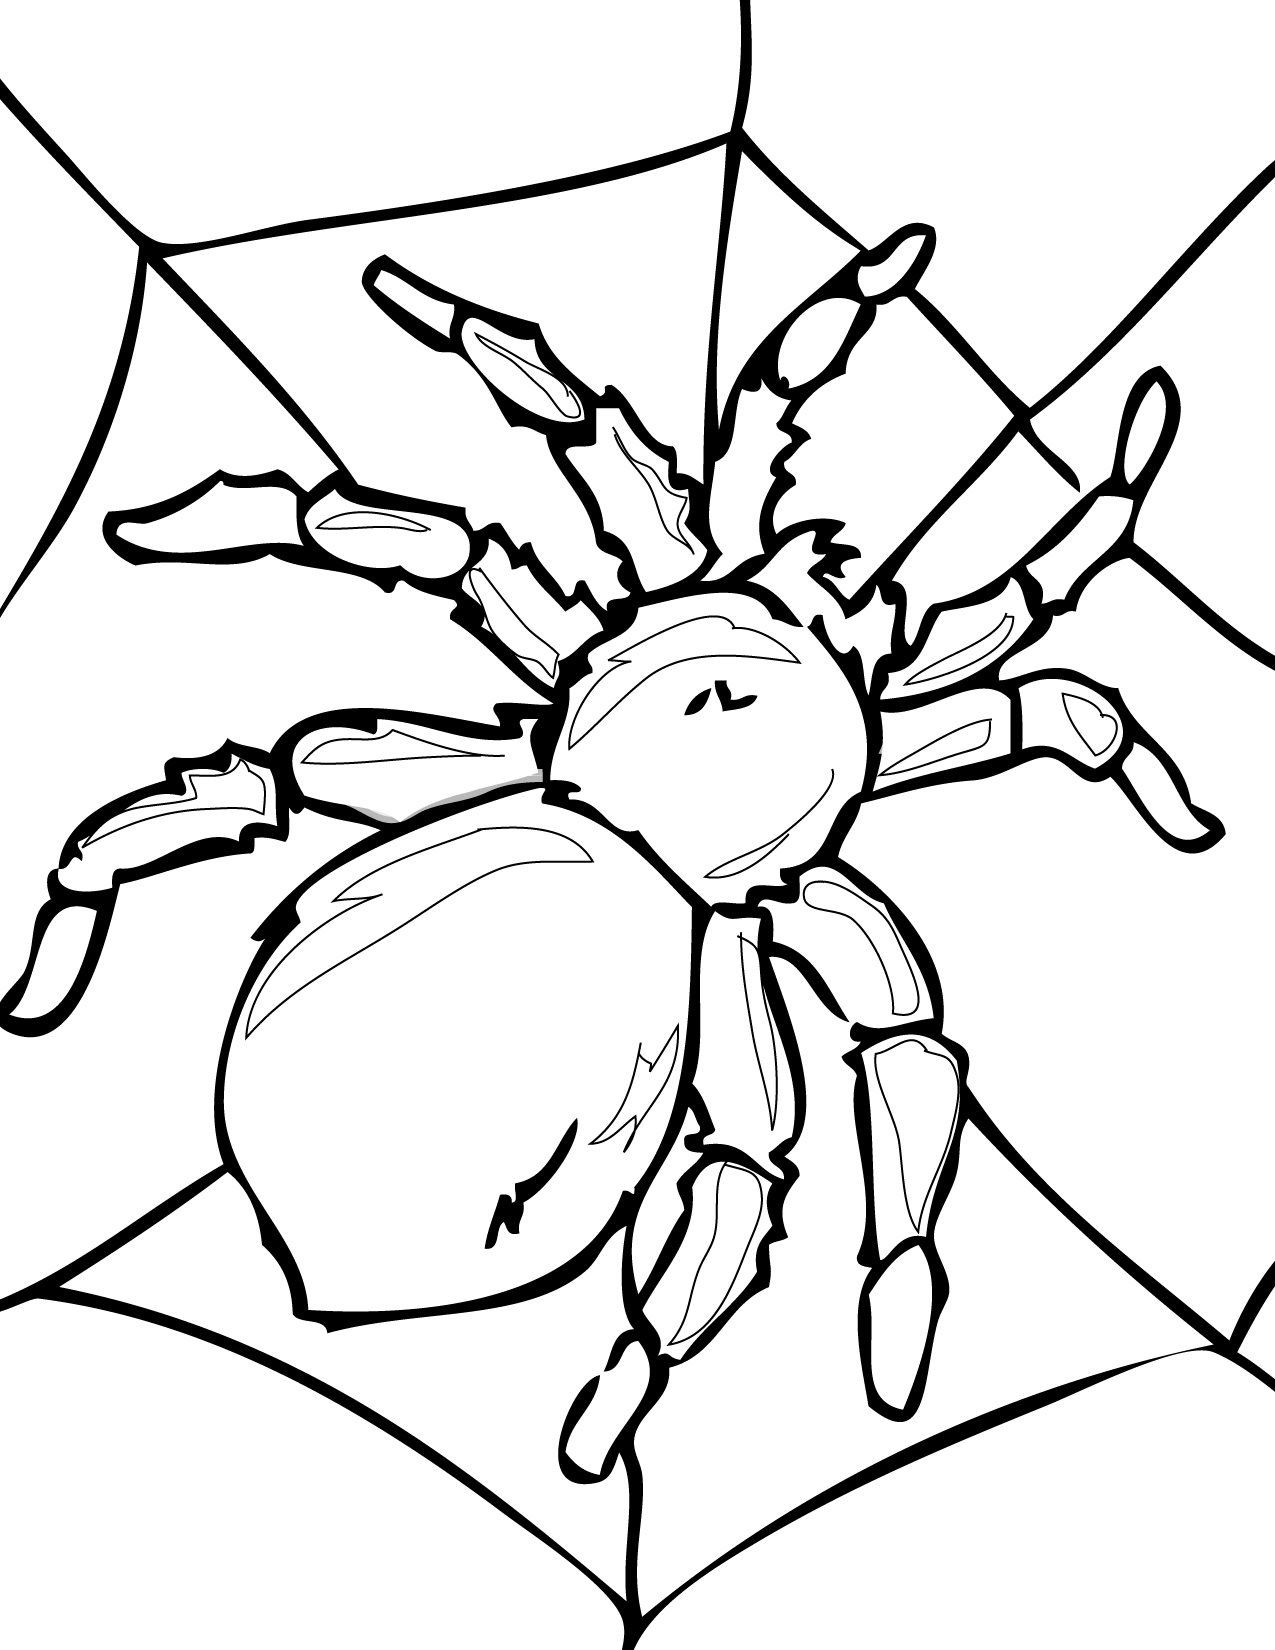 1275x1650 Insects Coloring Pages Insect Coloring Page Bee Coloring Page